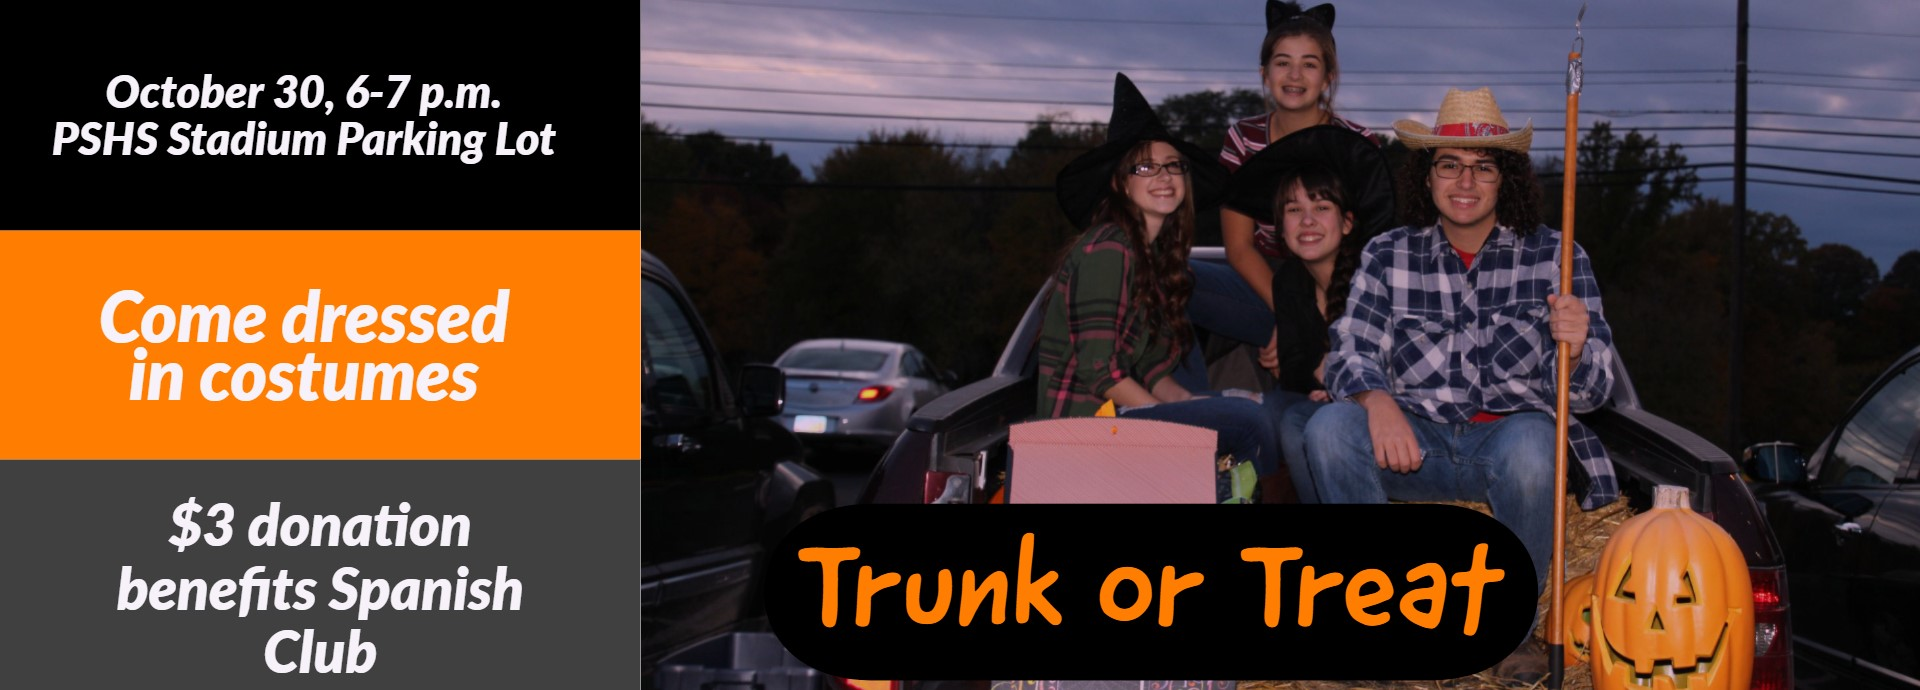 Spanish Club Trunk or Treat.  October 30 from 6-7pm at the PSHS Stadium Parking Lot.  Come dressed in costumes.  $3 donation benefits Spanish Club.  Students dressed in costumes.